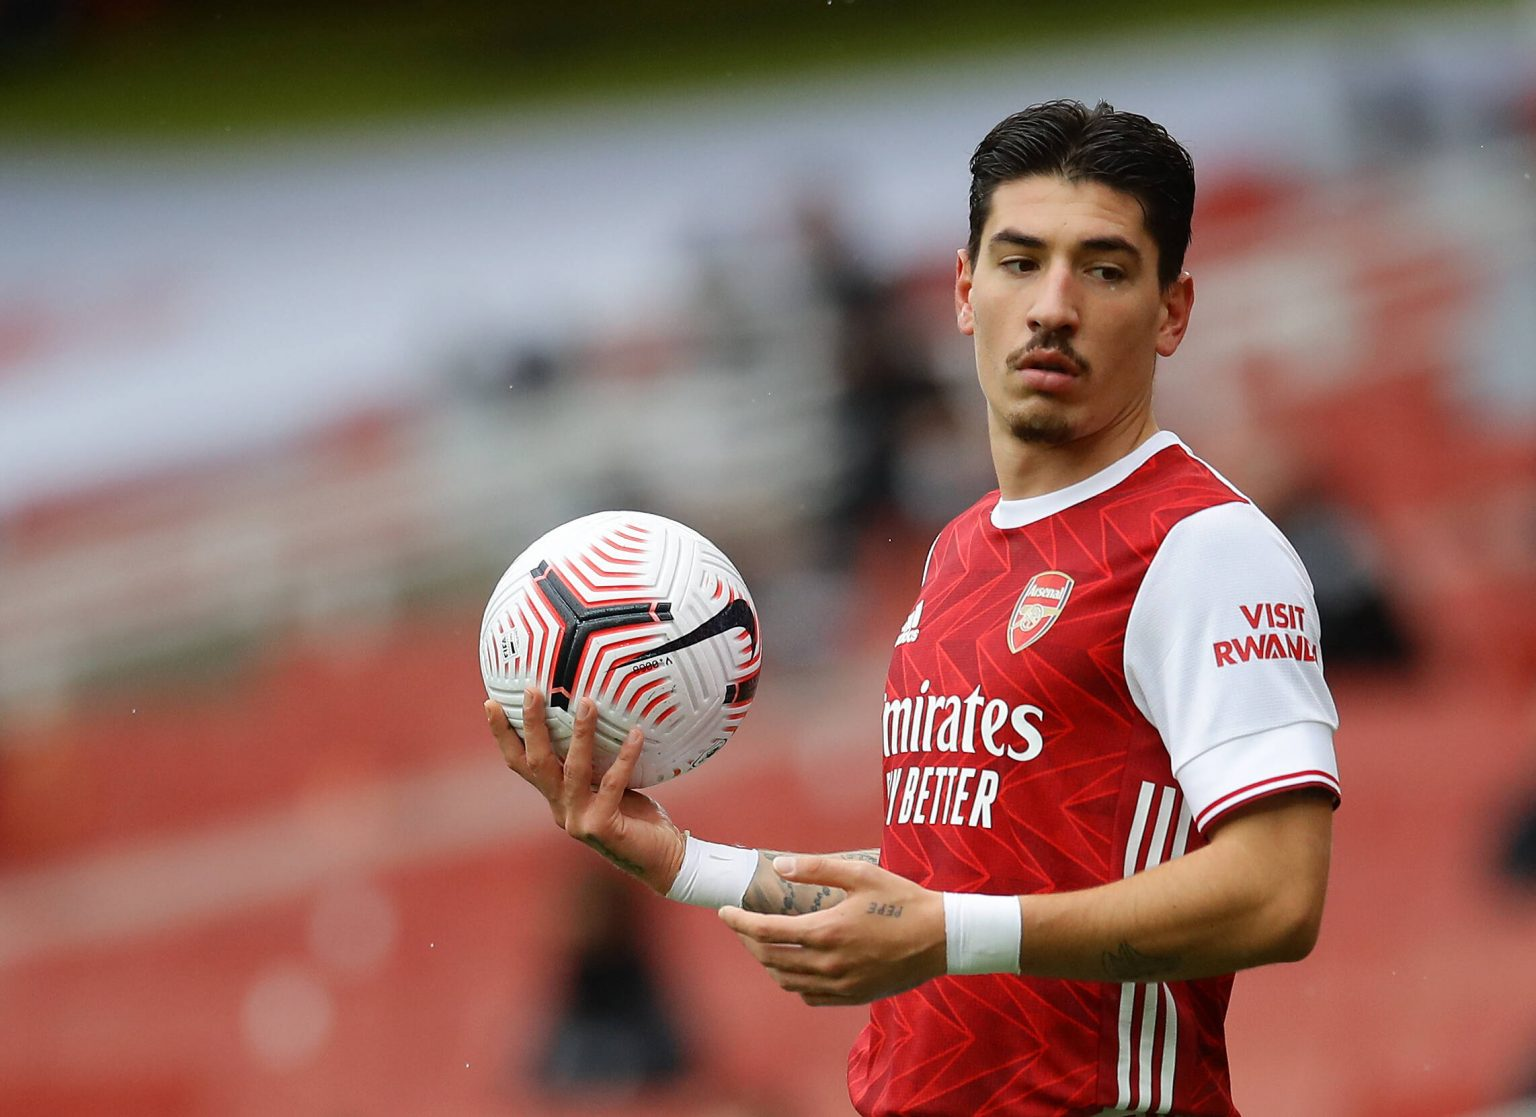 Hector Bellerin Only Wants Inter As His Agent Meets With Arsenal To Resolve Issue - Bóng Đá